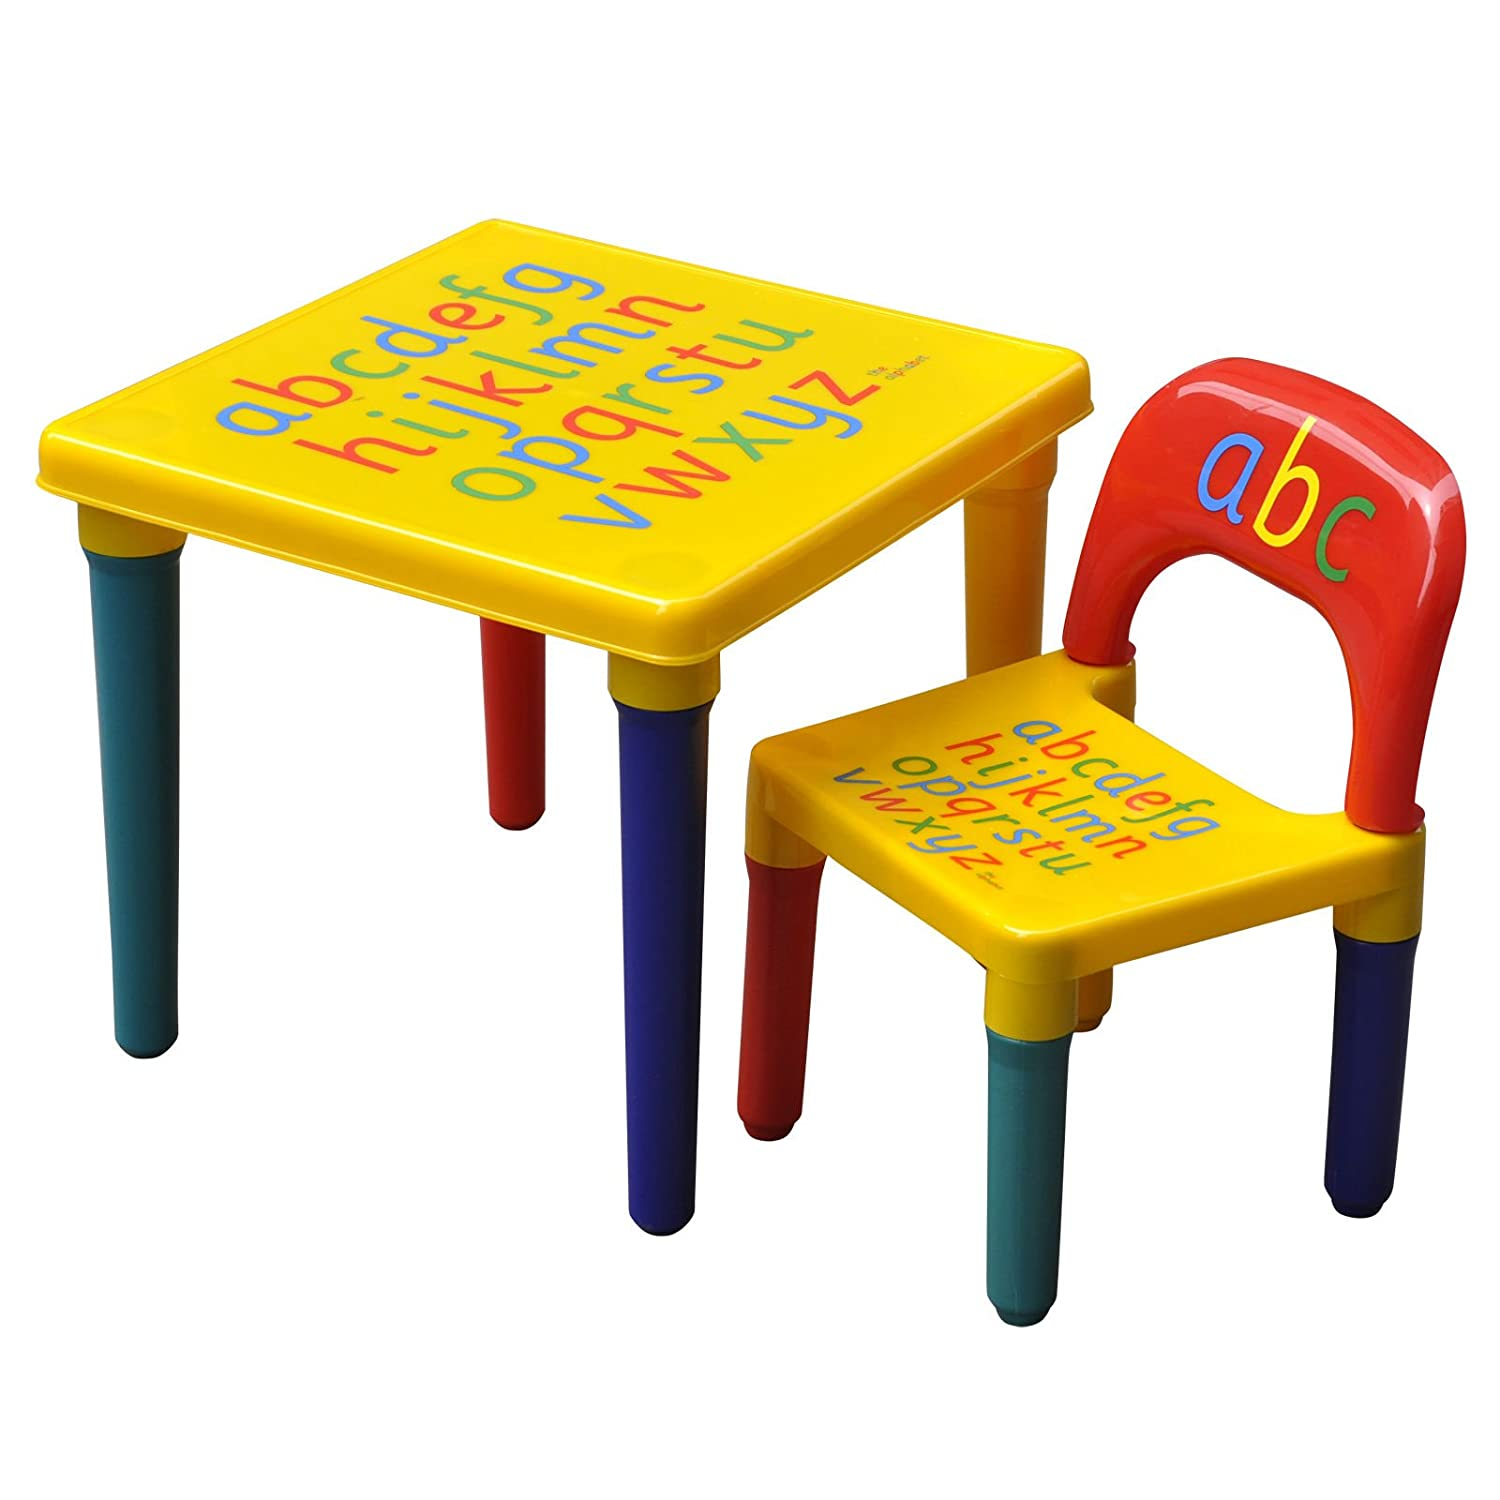 HomeStoreDirect ® ABC Alphabet Childrens Plastic Table and Chair Set Kids Toddlers Childs Rostrad ® HY01-01